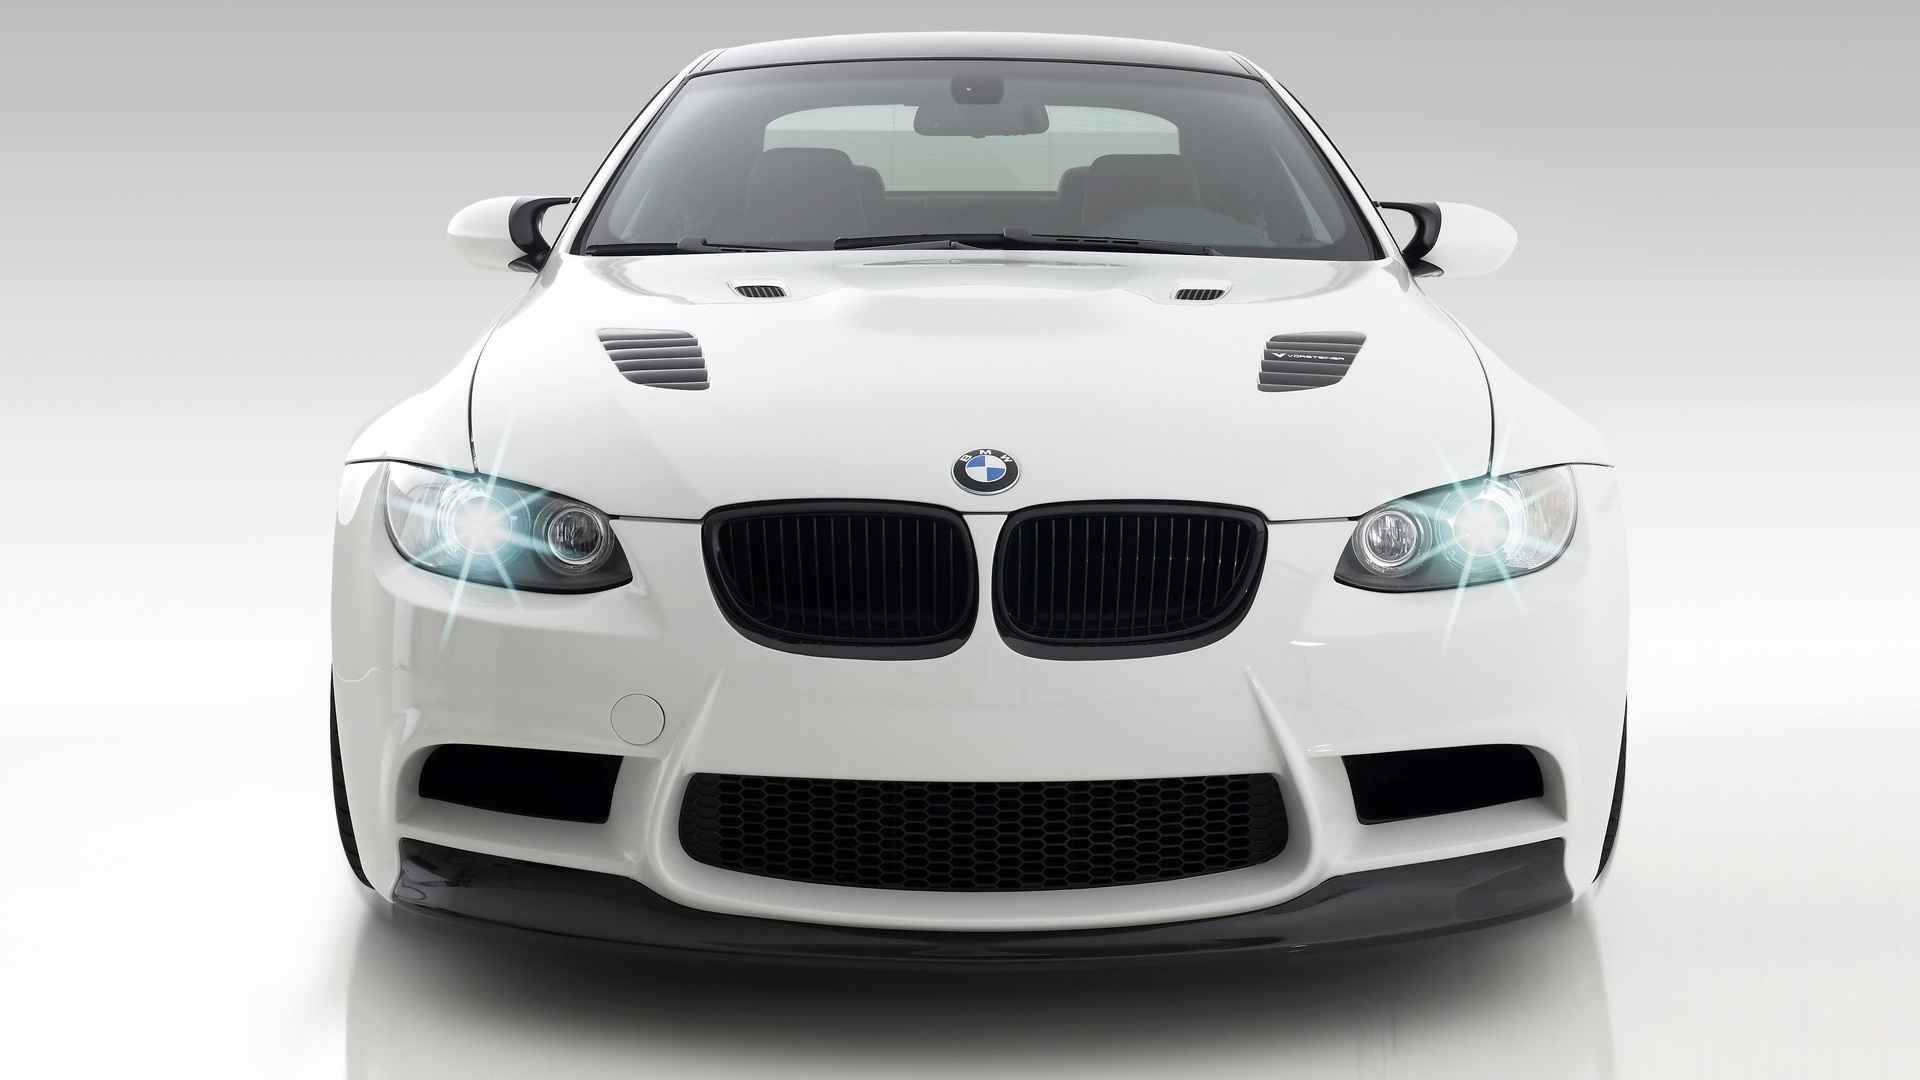 Free Download Download Bmw M3 Hd Wallpaper 1080p Unique Hd